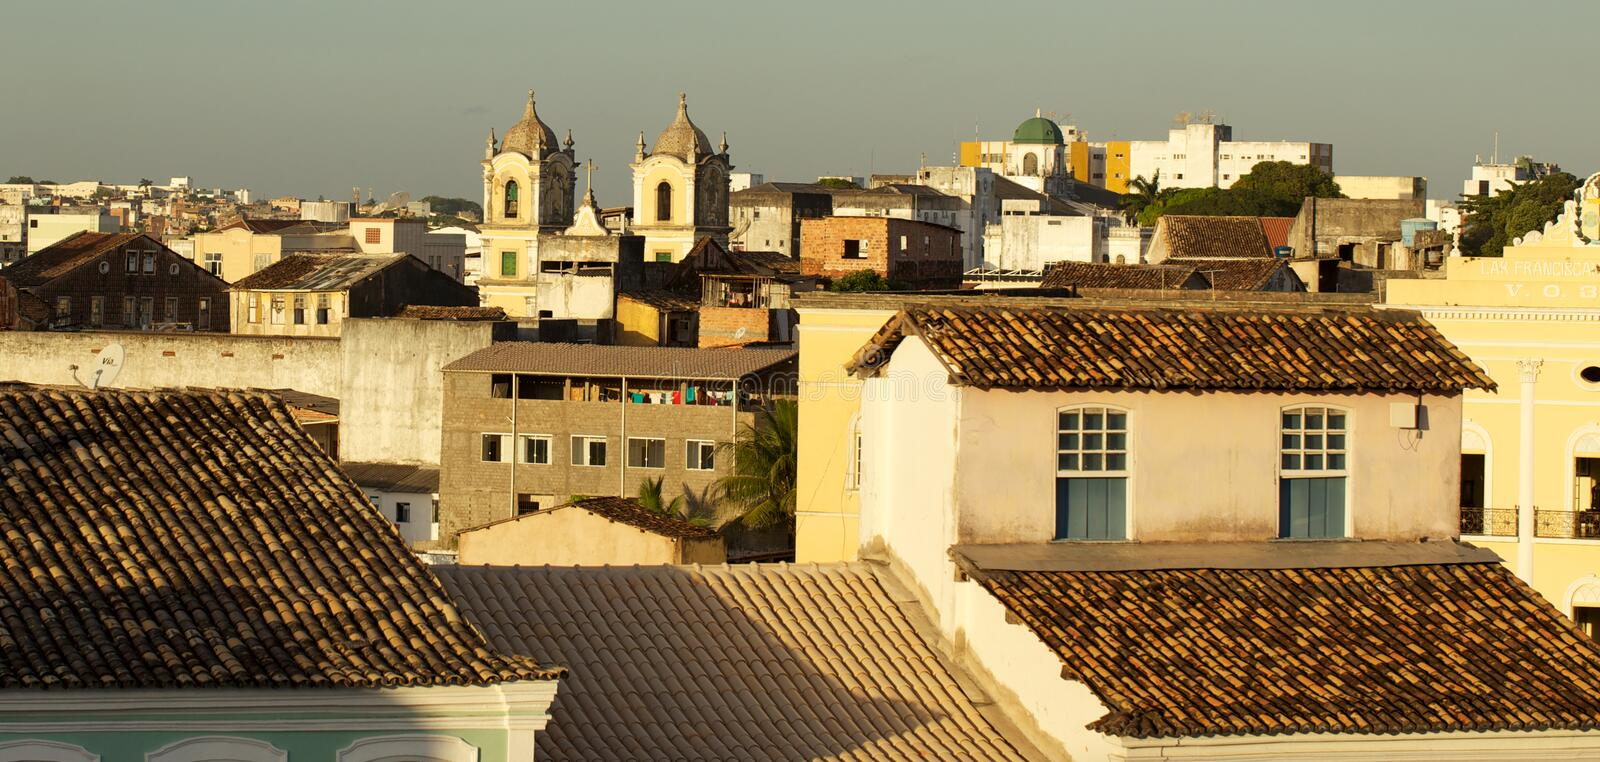 Download View On Salvador De Bahia's Roofs Stock Photo - Image: 19247650